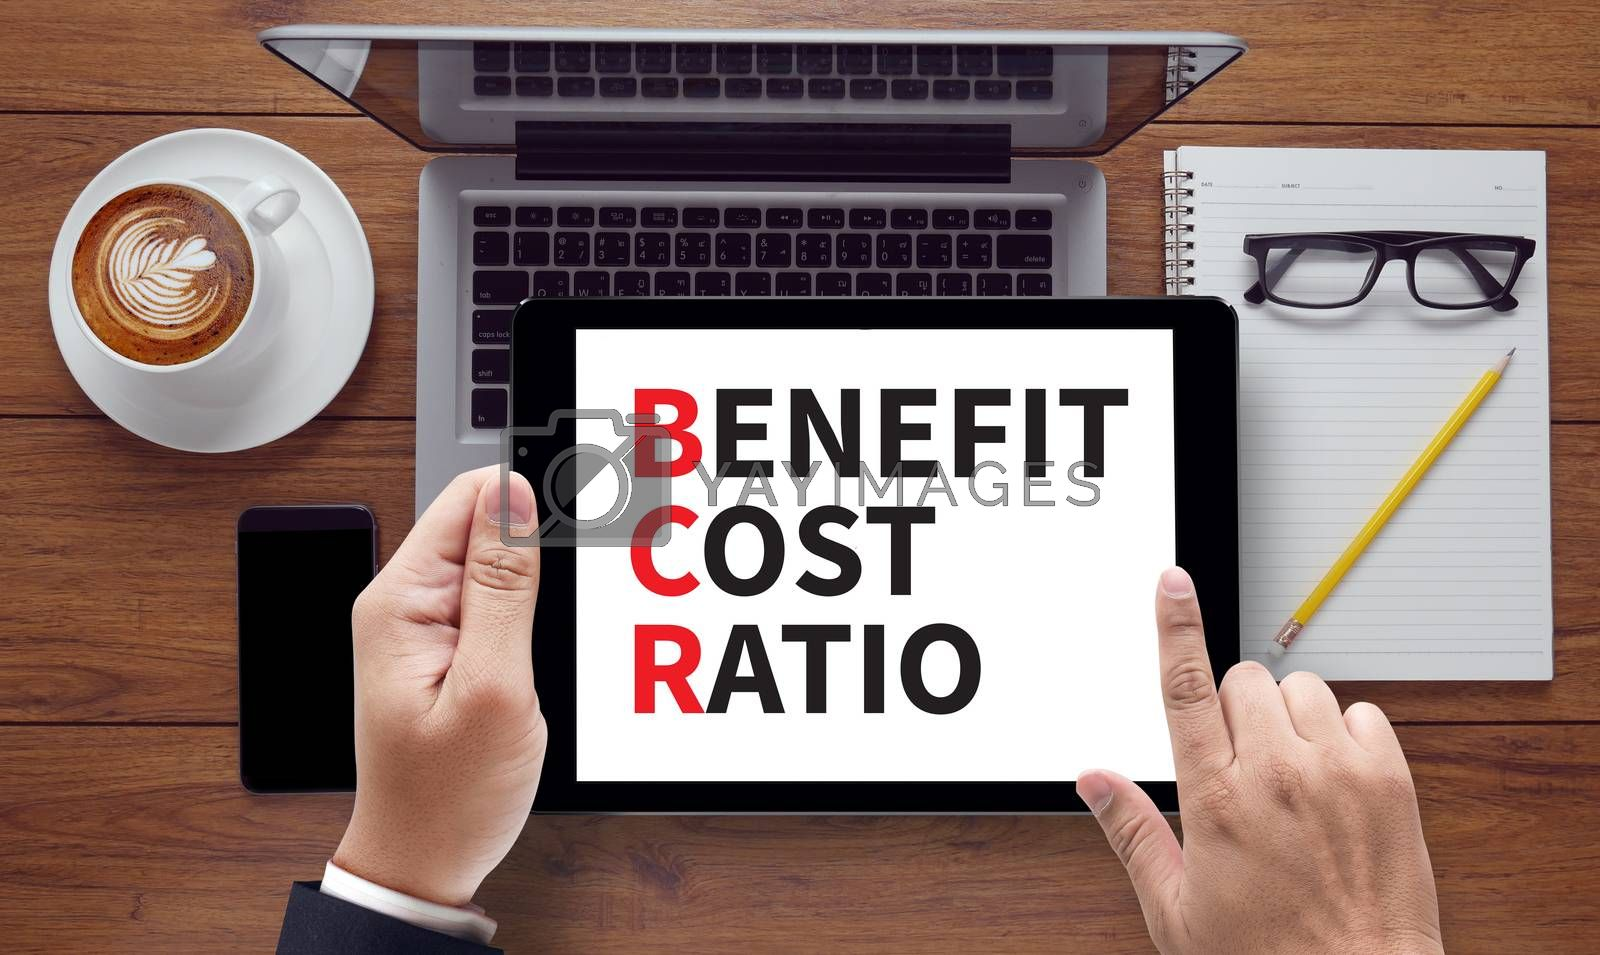 BENEFIT COST RATIO, on the tablet pc screen held by businessman hands - online, top view